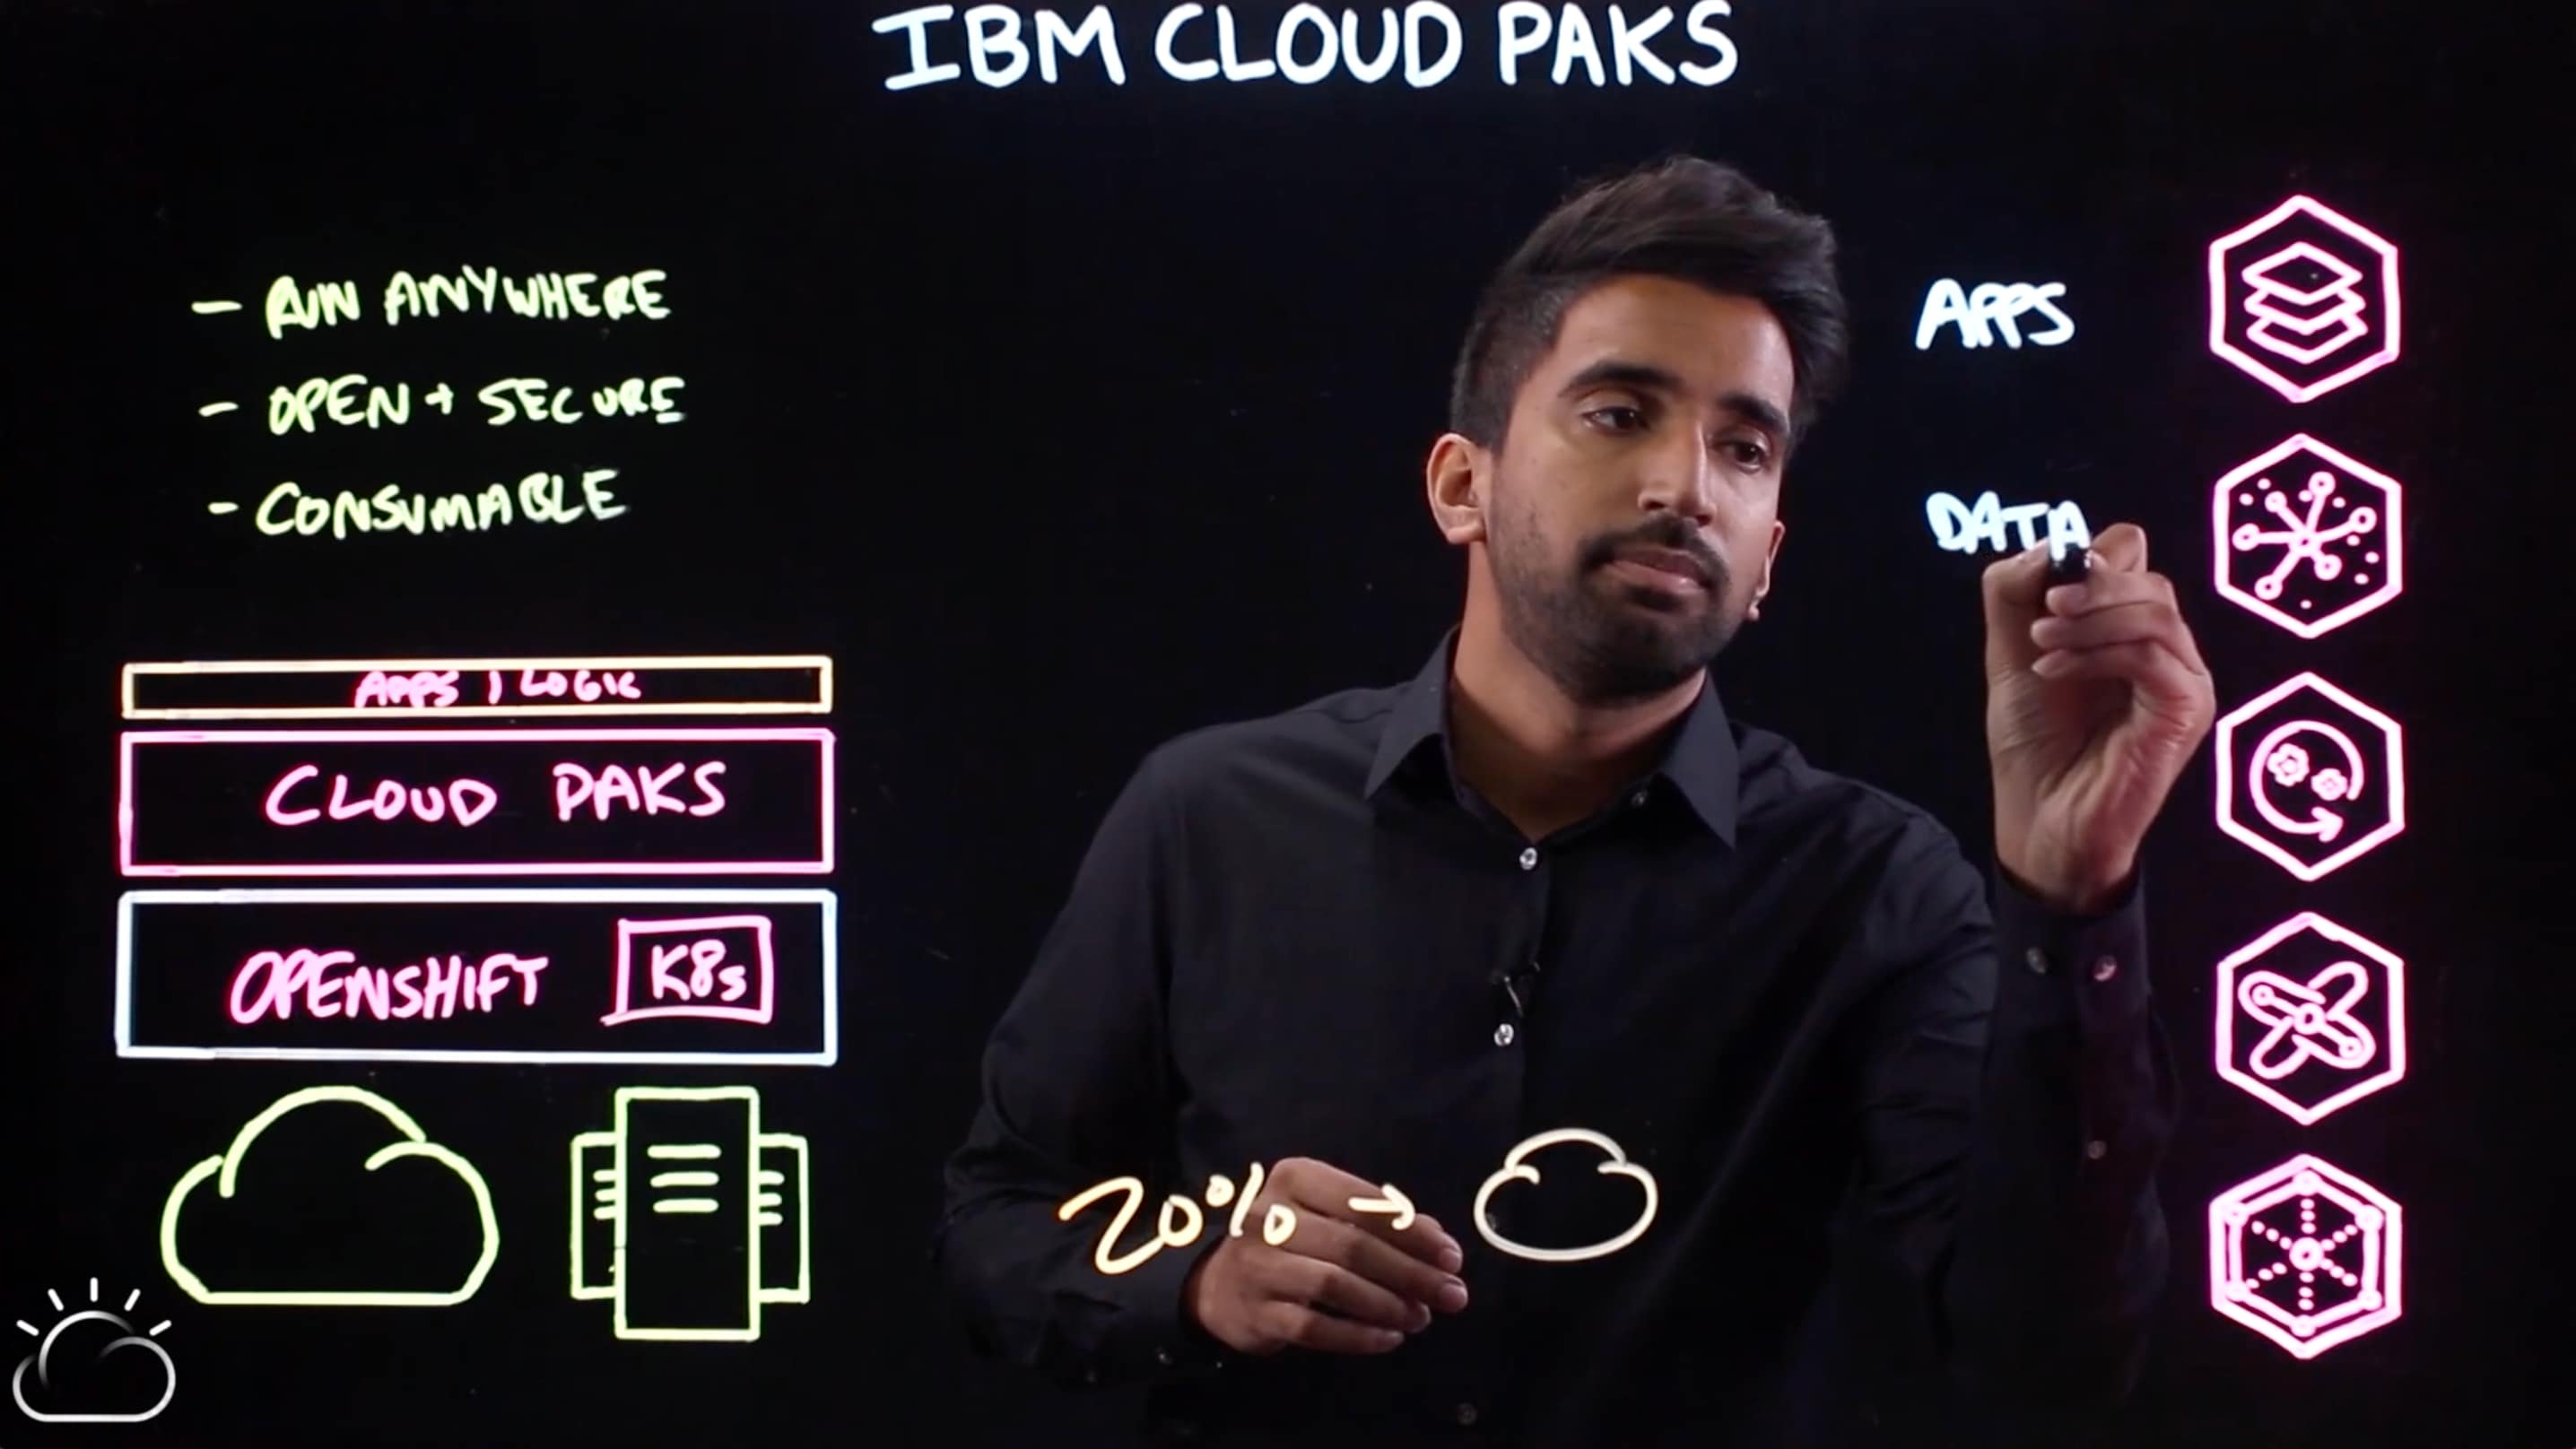 IBM Cloud Pak for Data